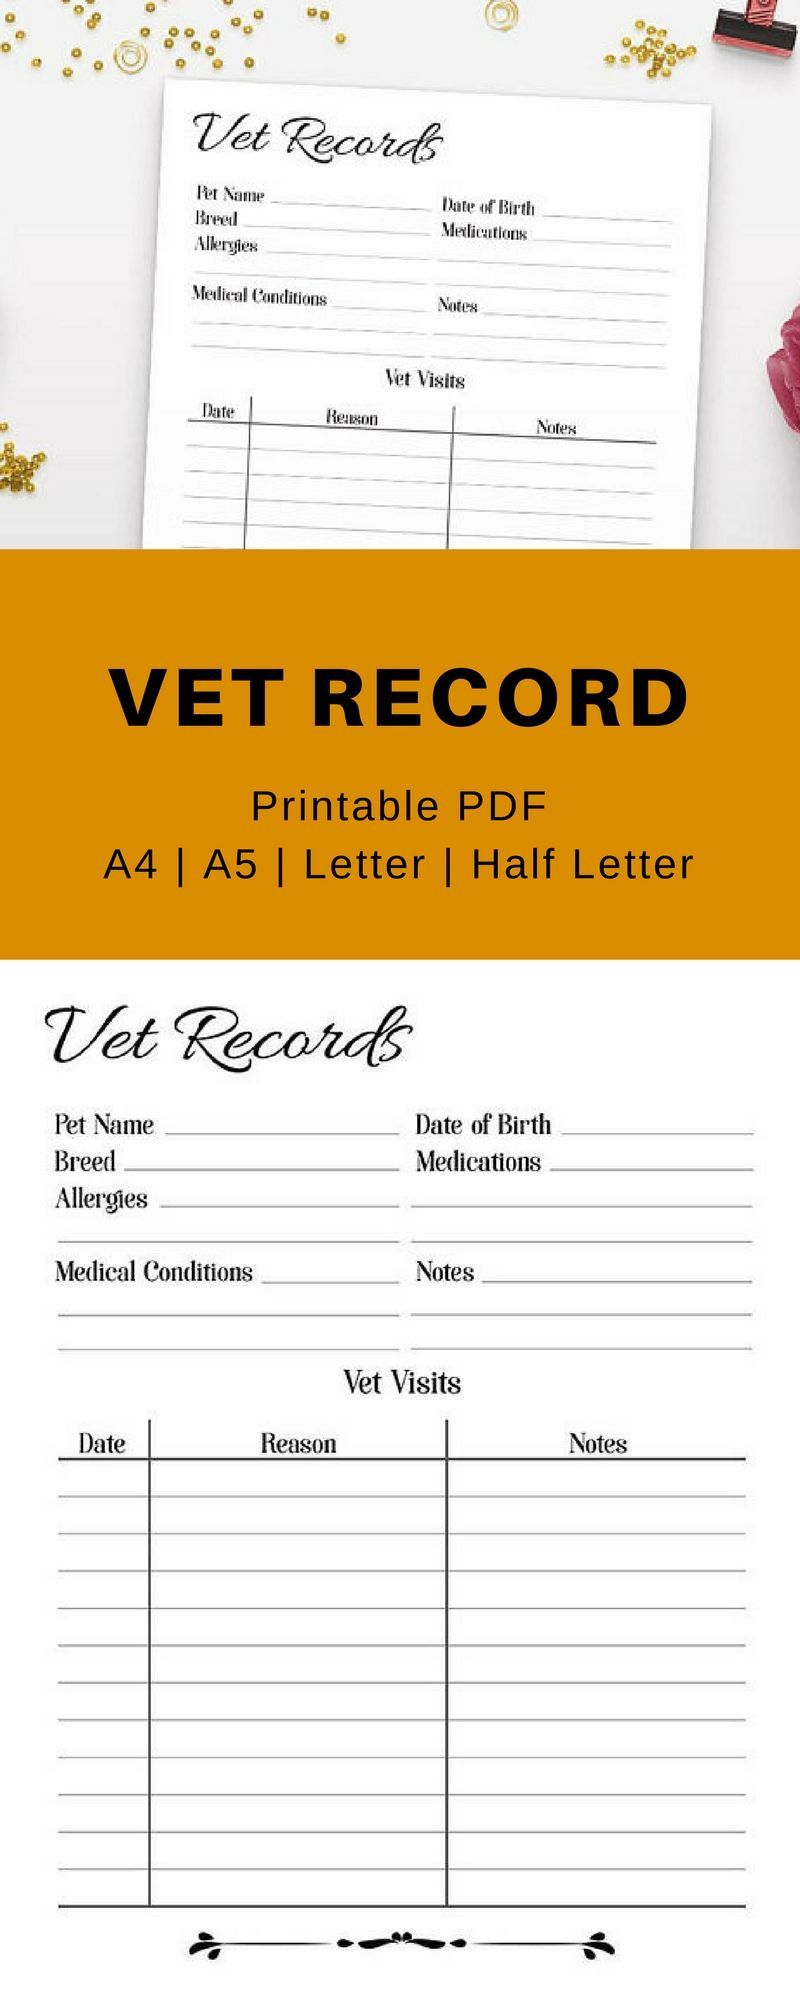 Handy Vet Records Printable This Pet Printable Will Help You To Keep Track Of Your Dog Or Cat S Healthcare Ve Pet Care Printables Pet Health Cat Health Care